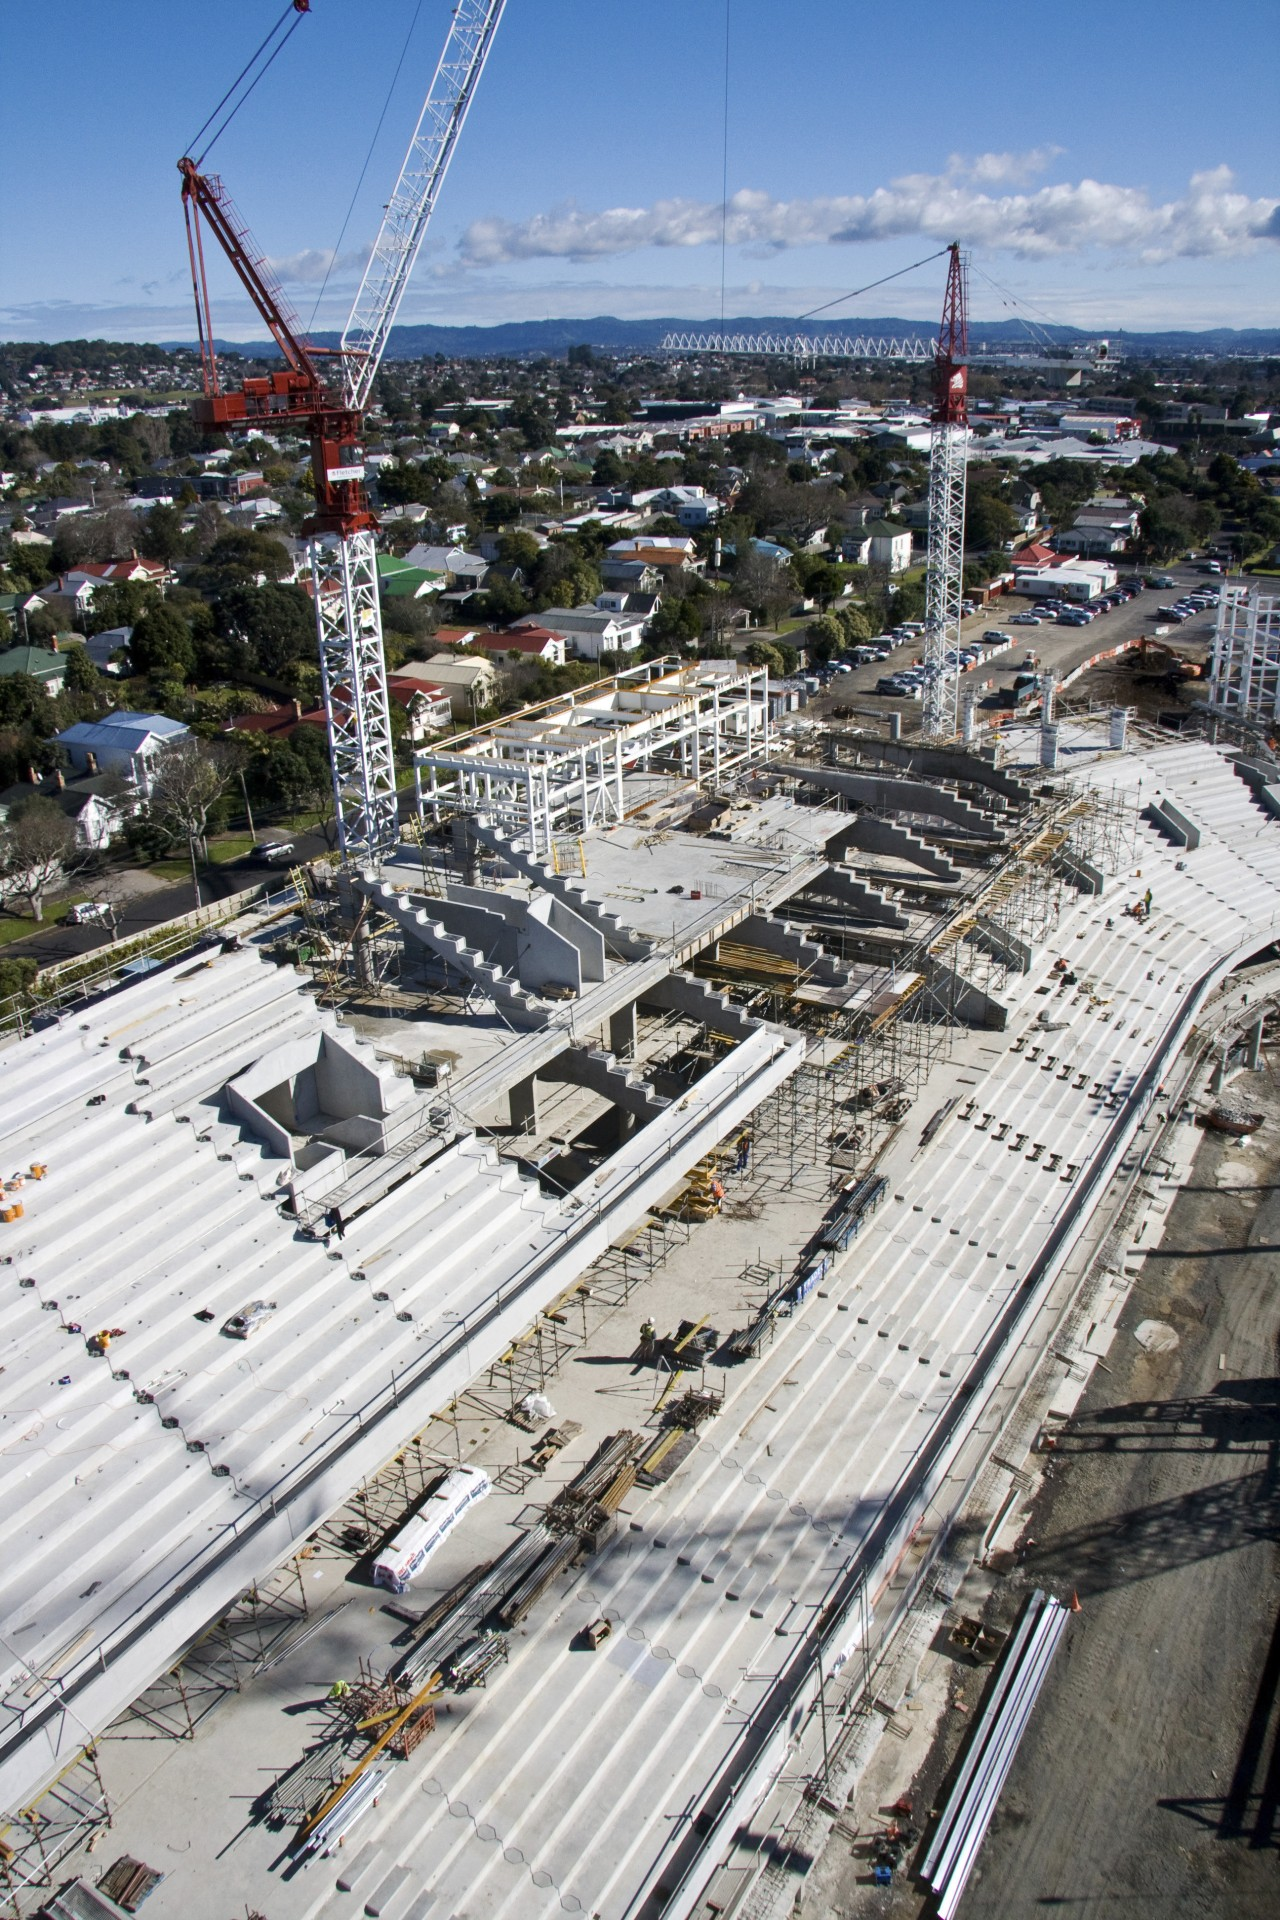 View of Eden Park's new South Stand which aerial photography, bird's eye view, building, city, construction, metropolis, metropolitan area, sky, transport, urban area, white